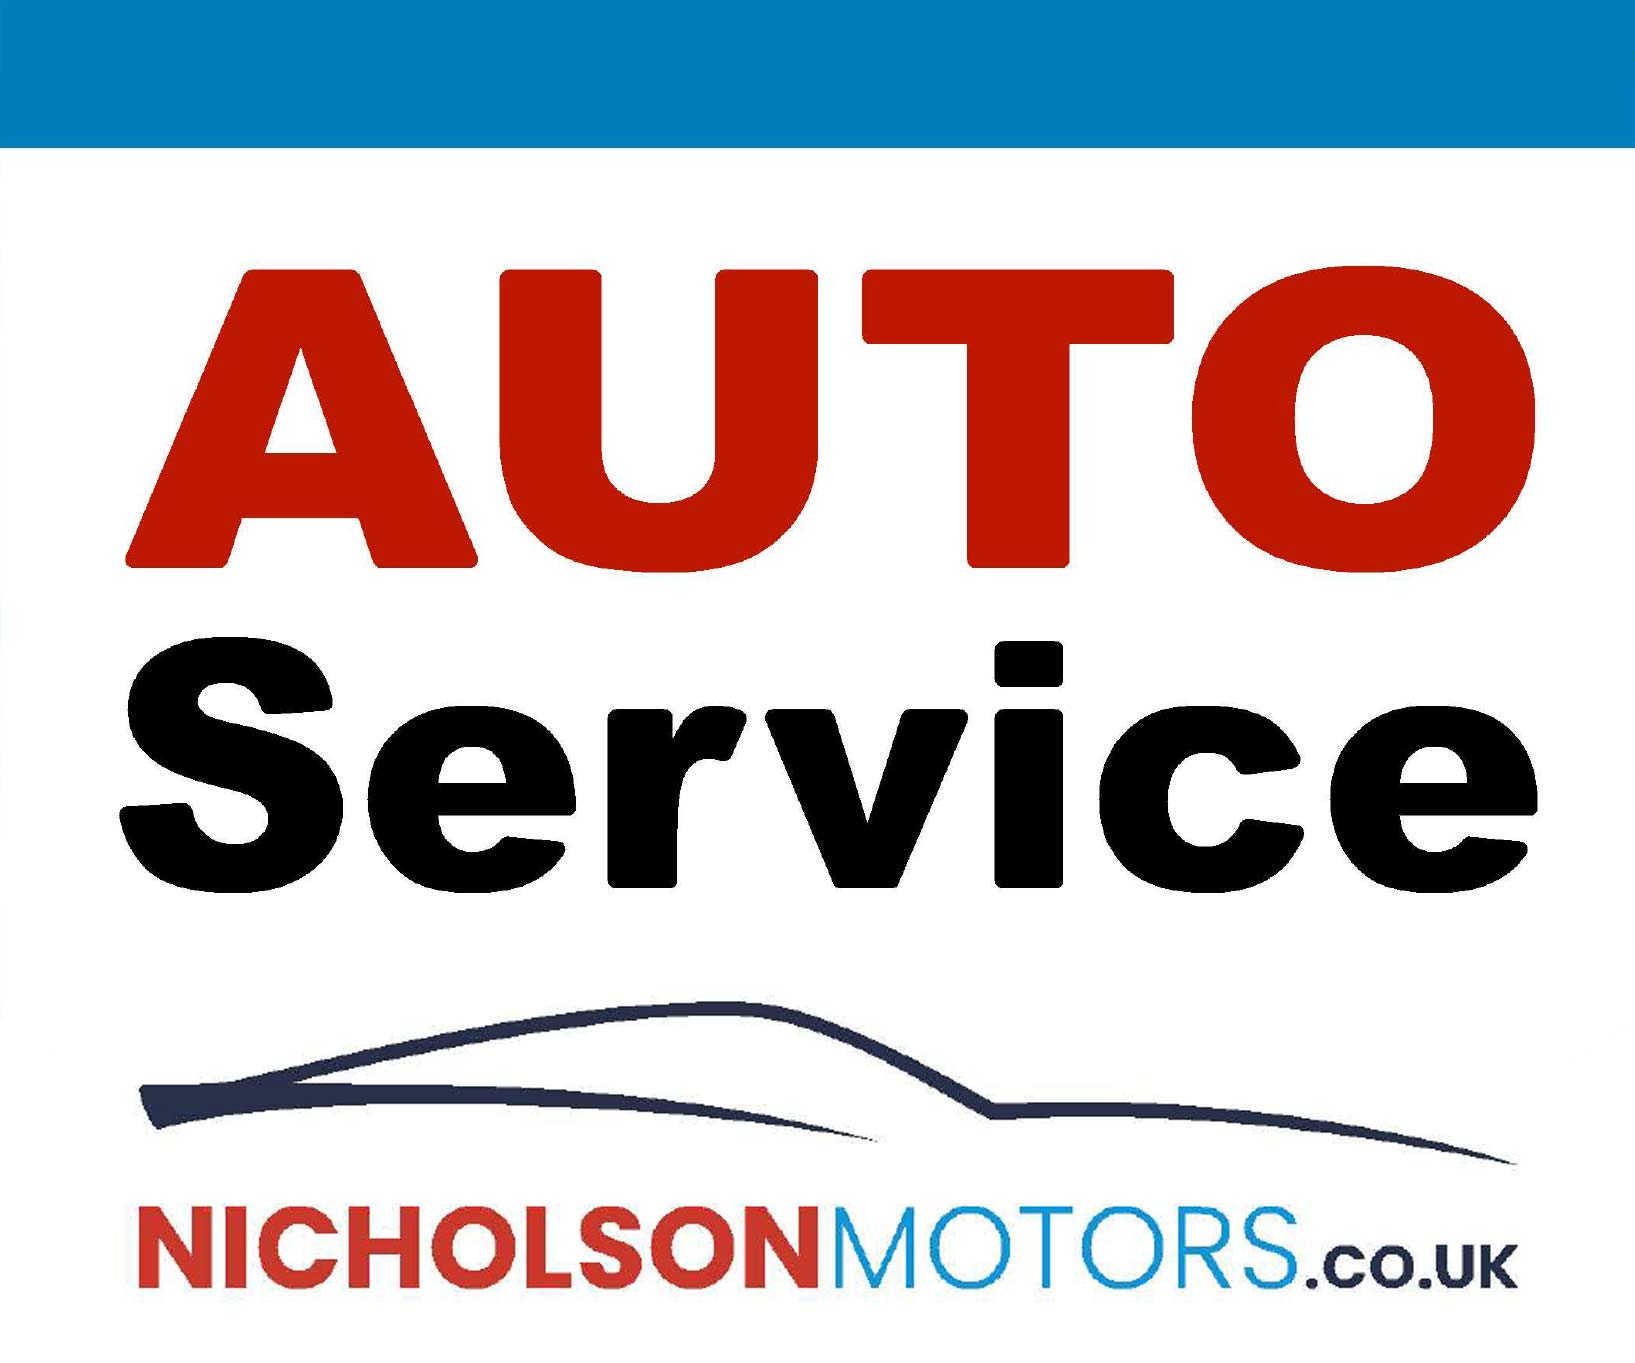 Nicholson Motors of Crowle